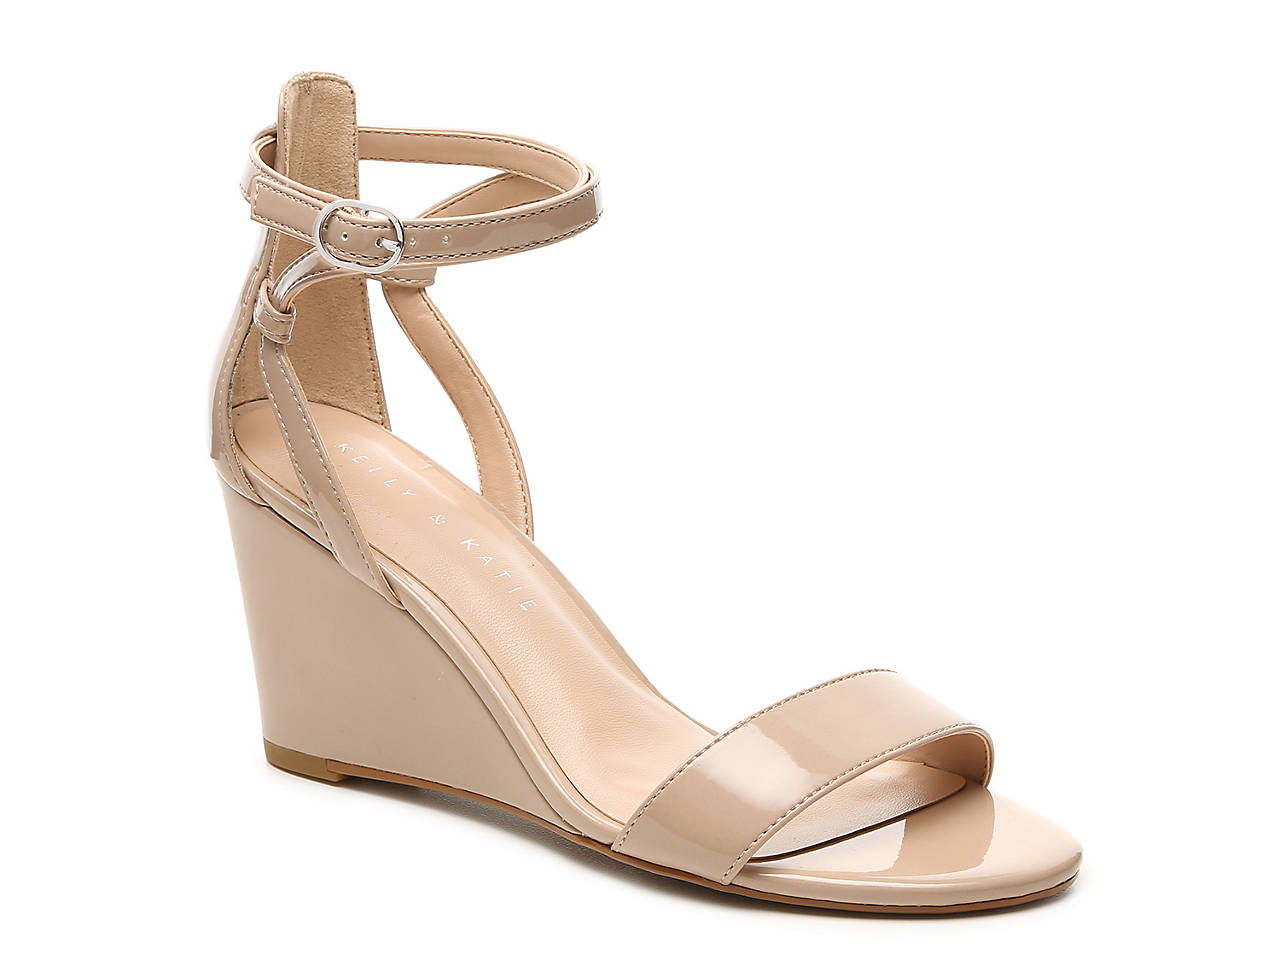 Women's Sandals, Summer Shoes & Wedge Sandals | DSW